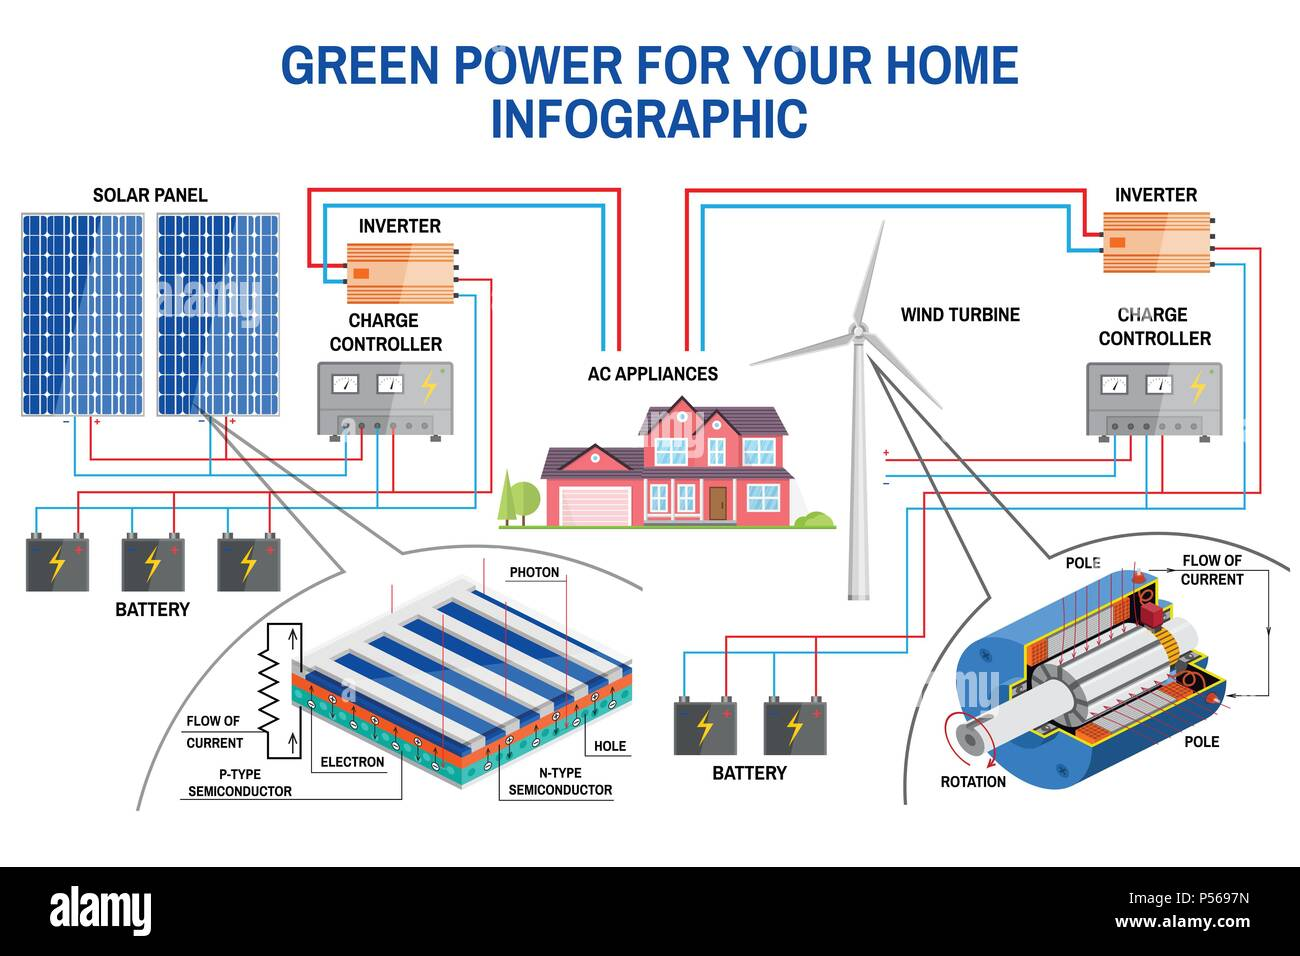 Solar Panel And Wind Power Generation System For Home Infographic Diagram Also Generator Diagrams On Turbine Simplified Of An Off Grid Battery Charg